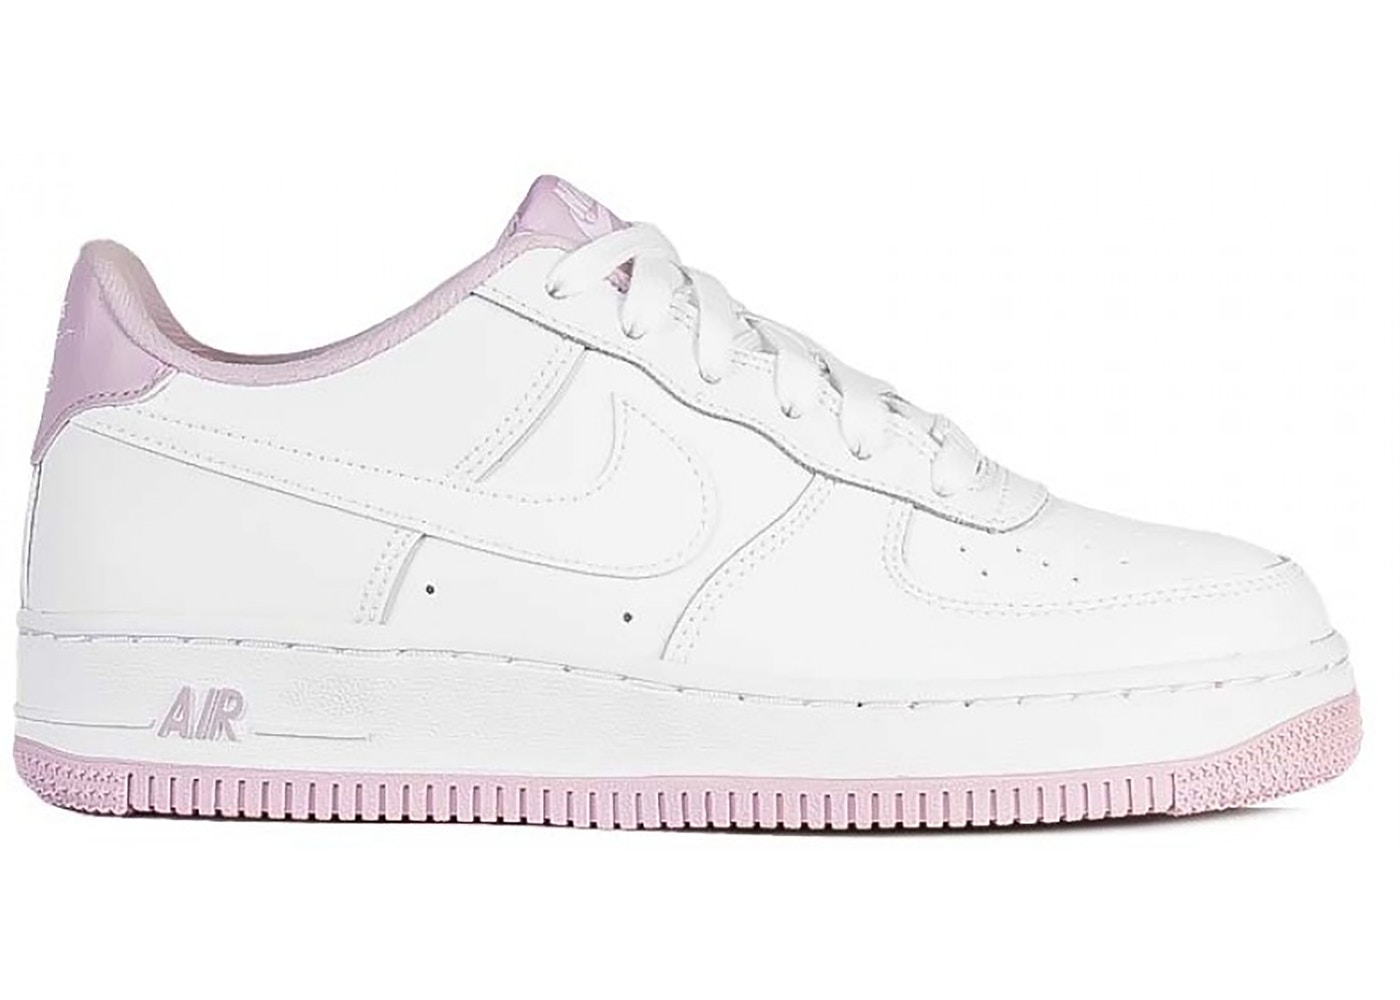 Nike Air Force 1 Low GS Nike Air Force 1 Low White Iced Lilac (GS) - CD6915-100